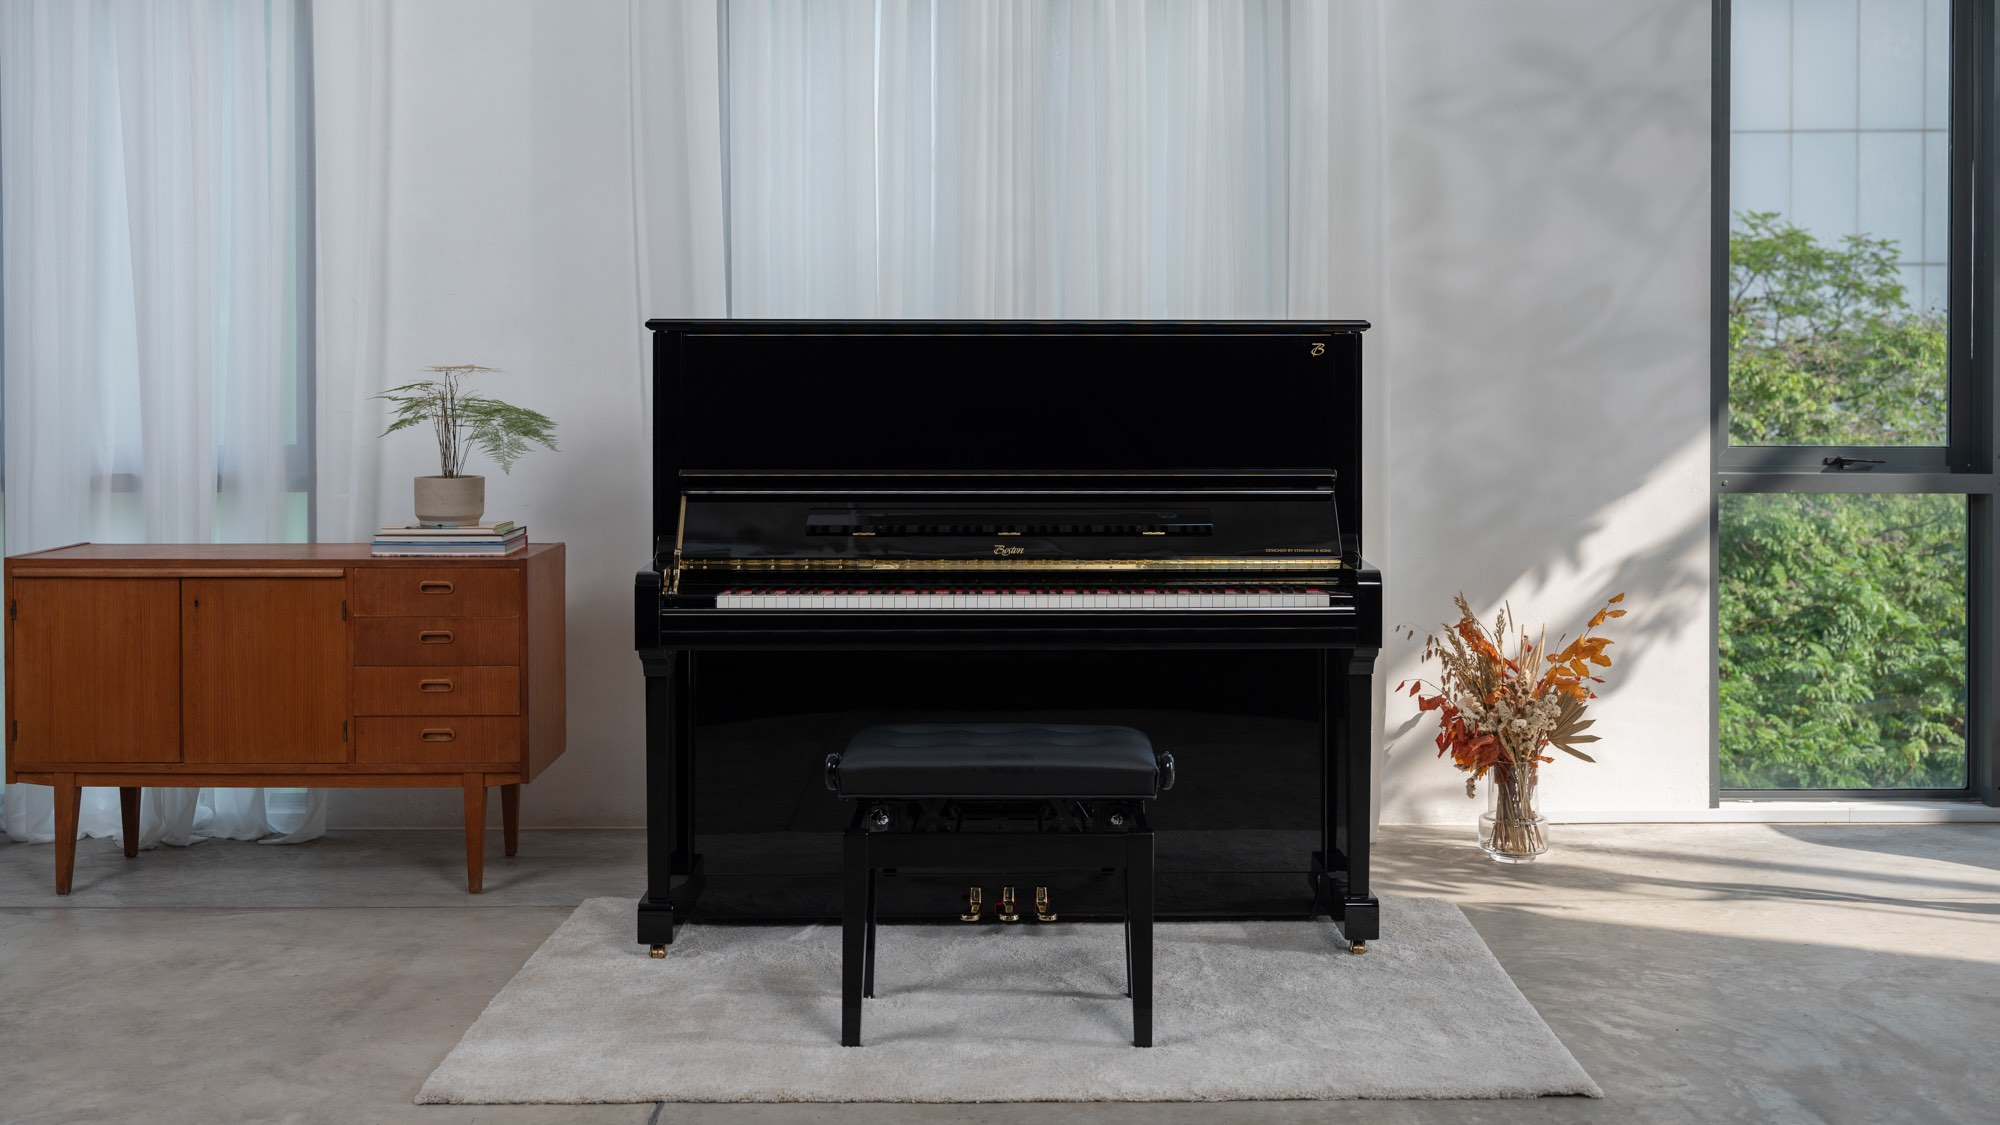 Piano Commercial Photography Product Photographer Singapore COCO Creative Studio-14